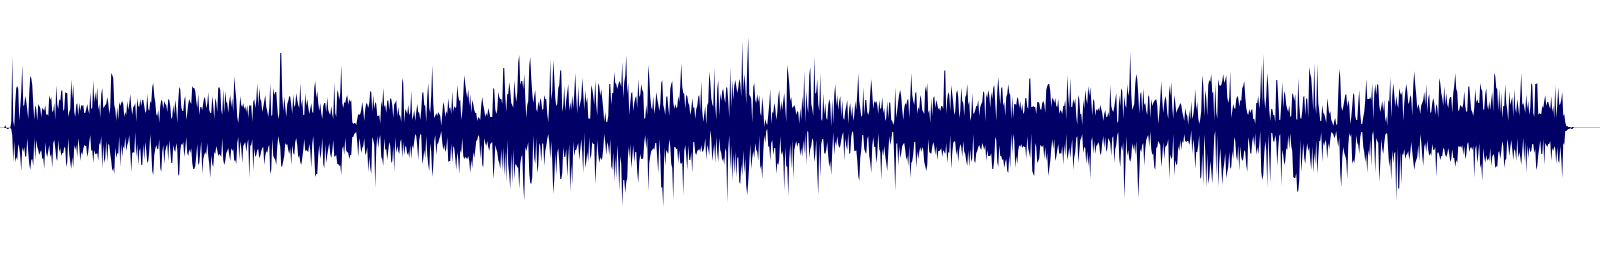 waveform of track #140198